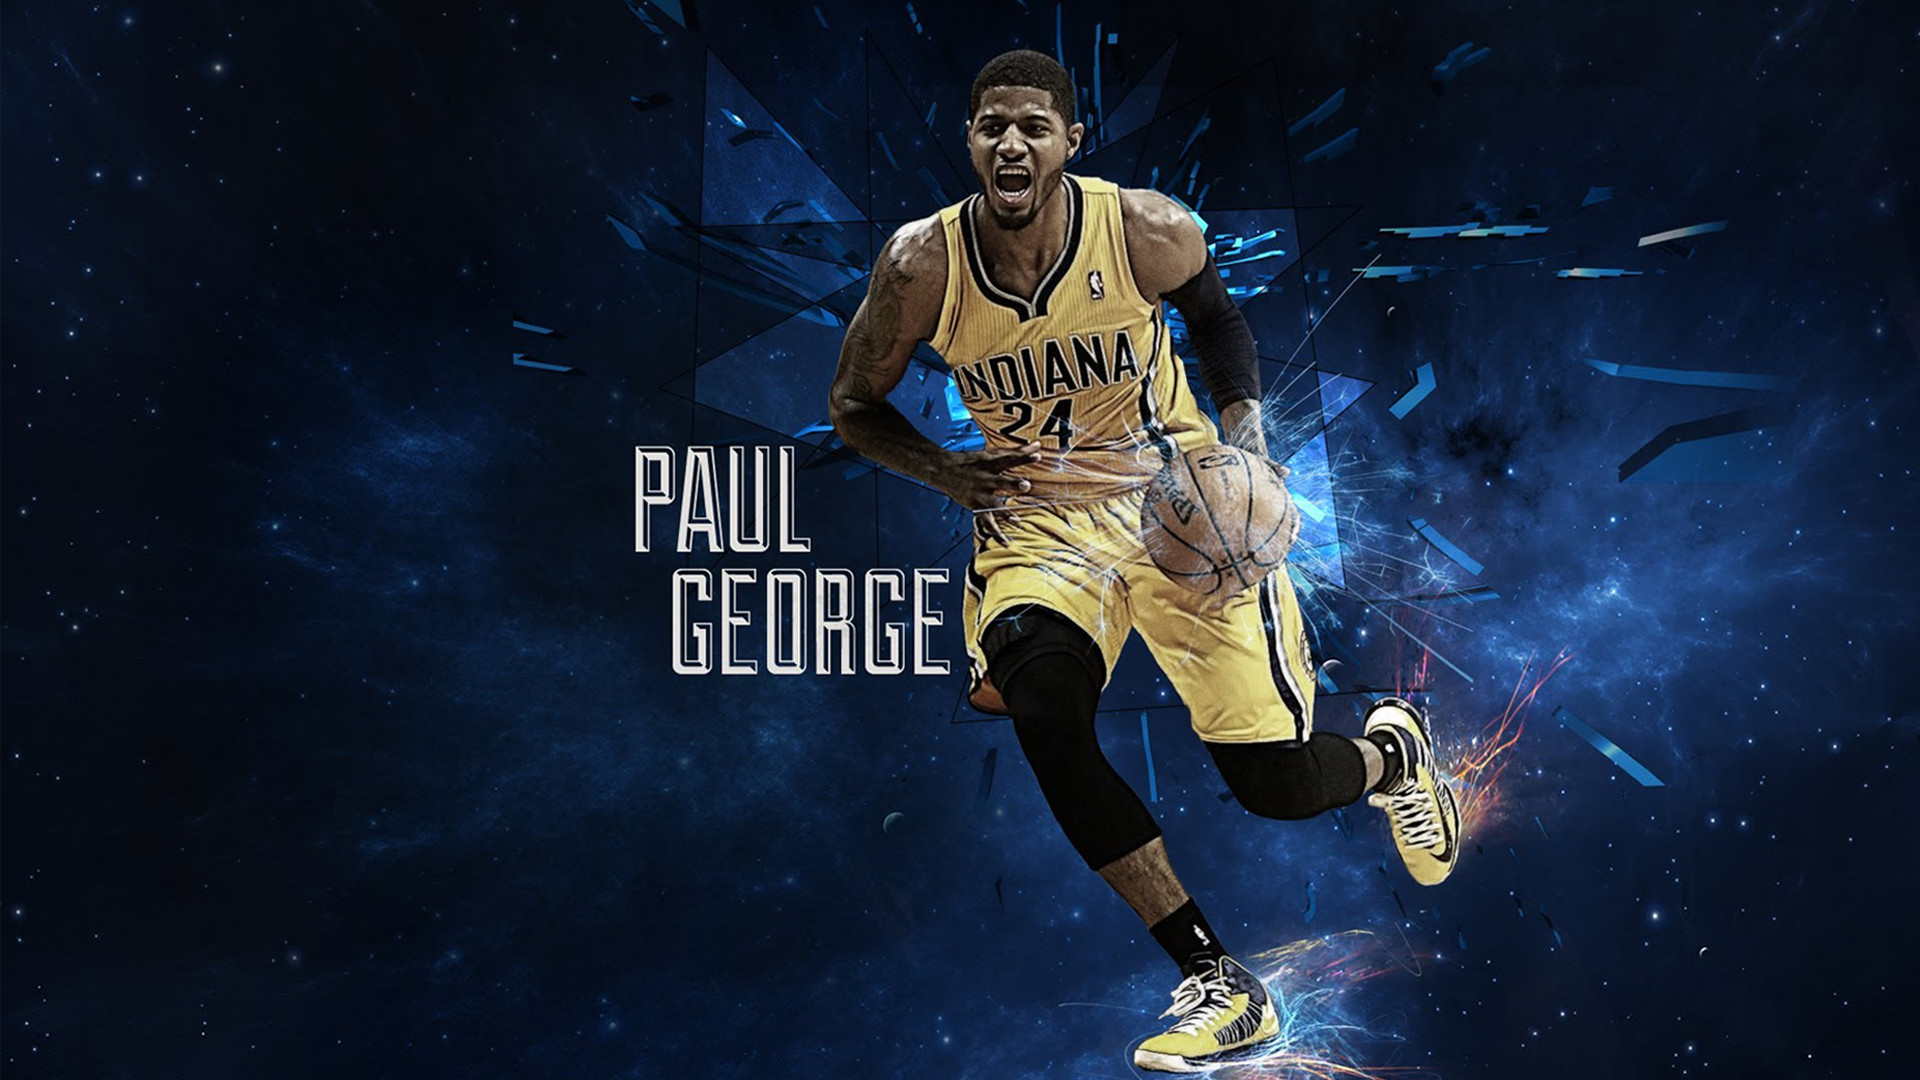 1920x1080 paul george indiana pacers nba players hd wallpaper free hd wallpapers high  definition amazing cool desktop wallpapers for windows tablet download free  ...